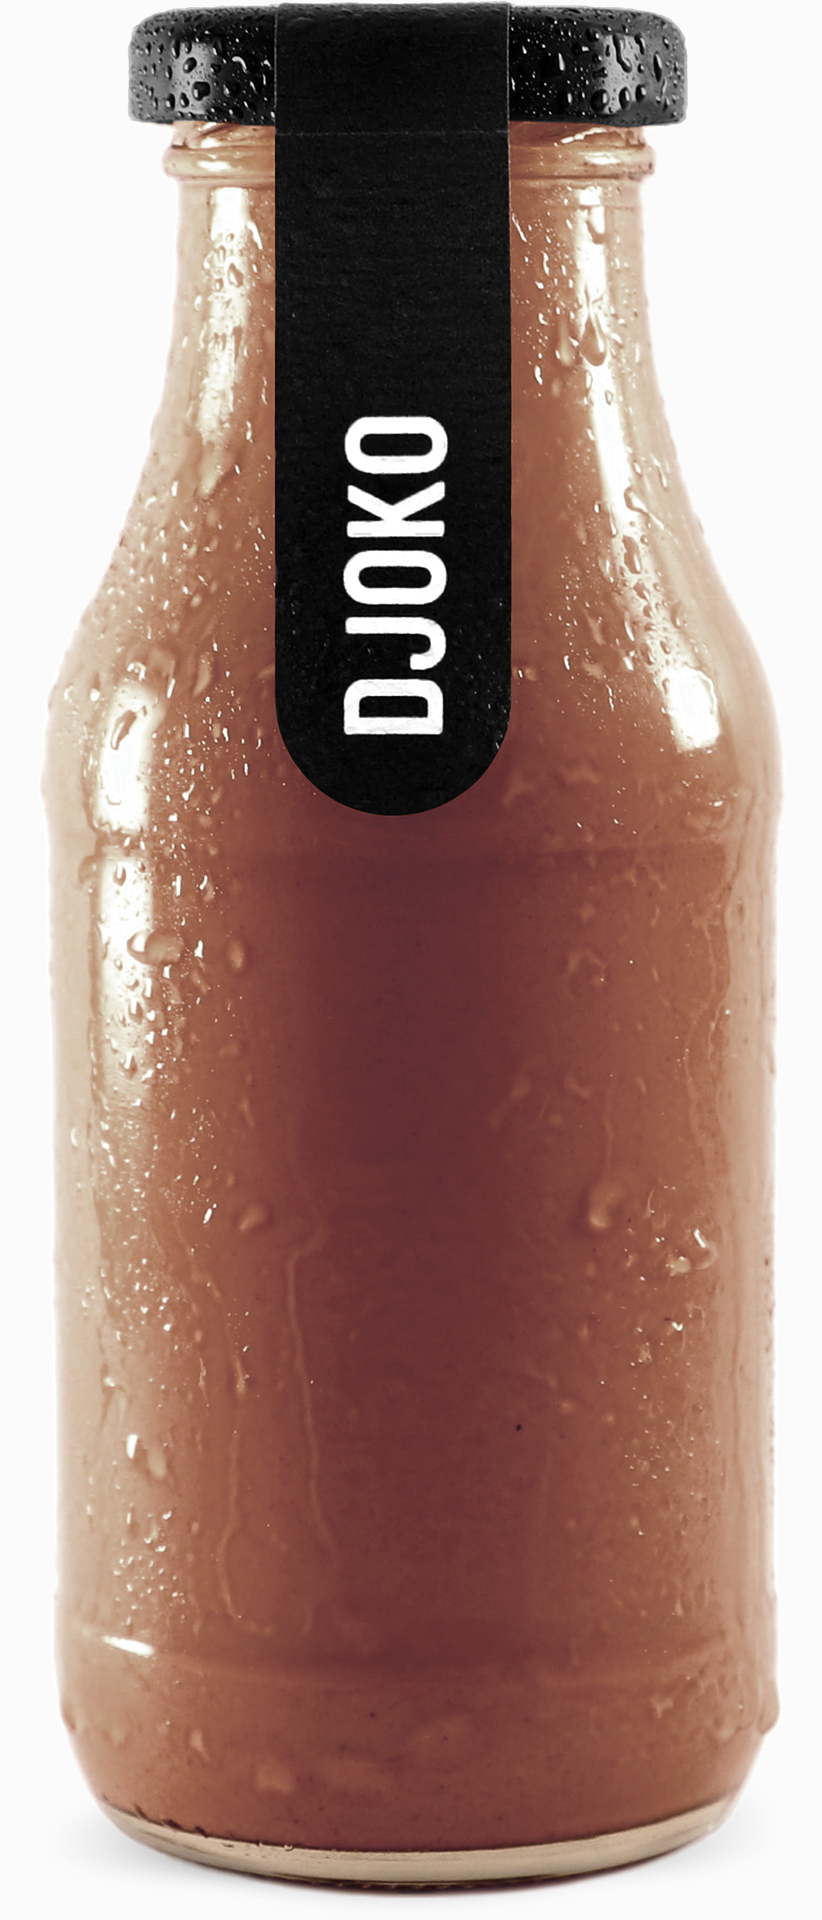 Djoko – Bio Mandel-/Cashewmilch mit Raw Cacao in 270ml Glasflasche.